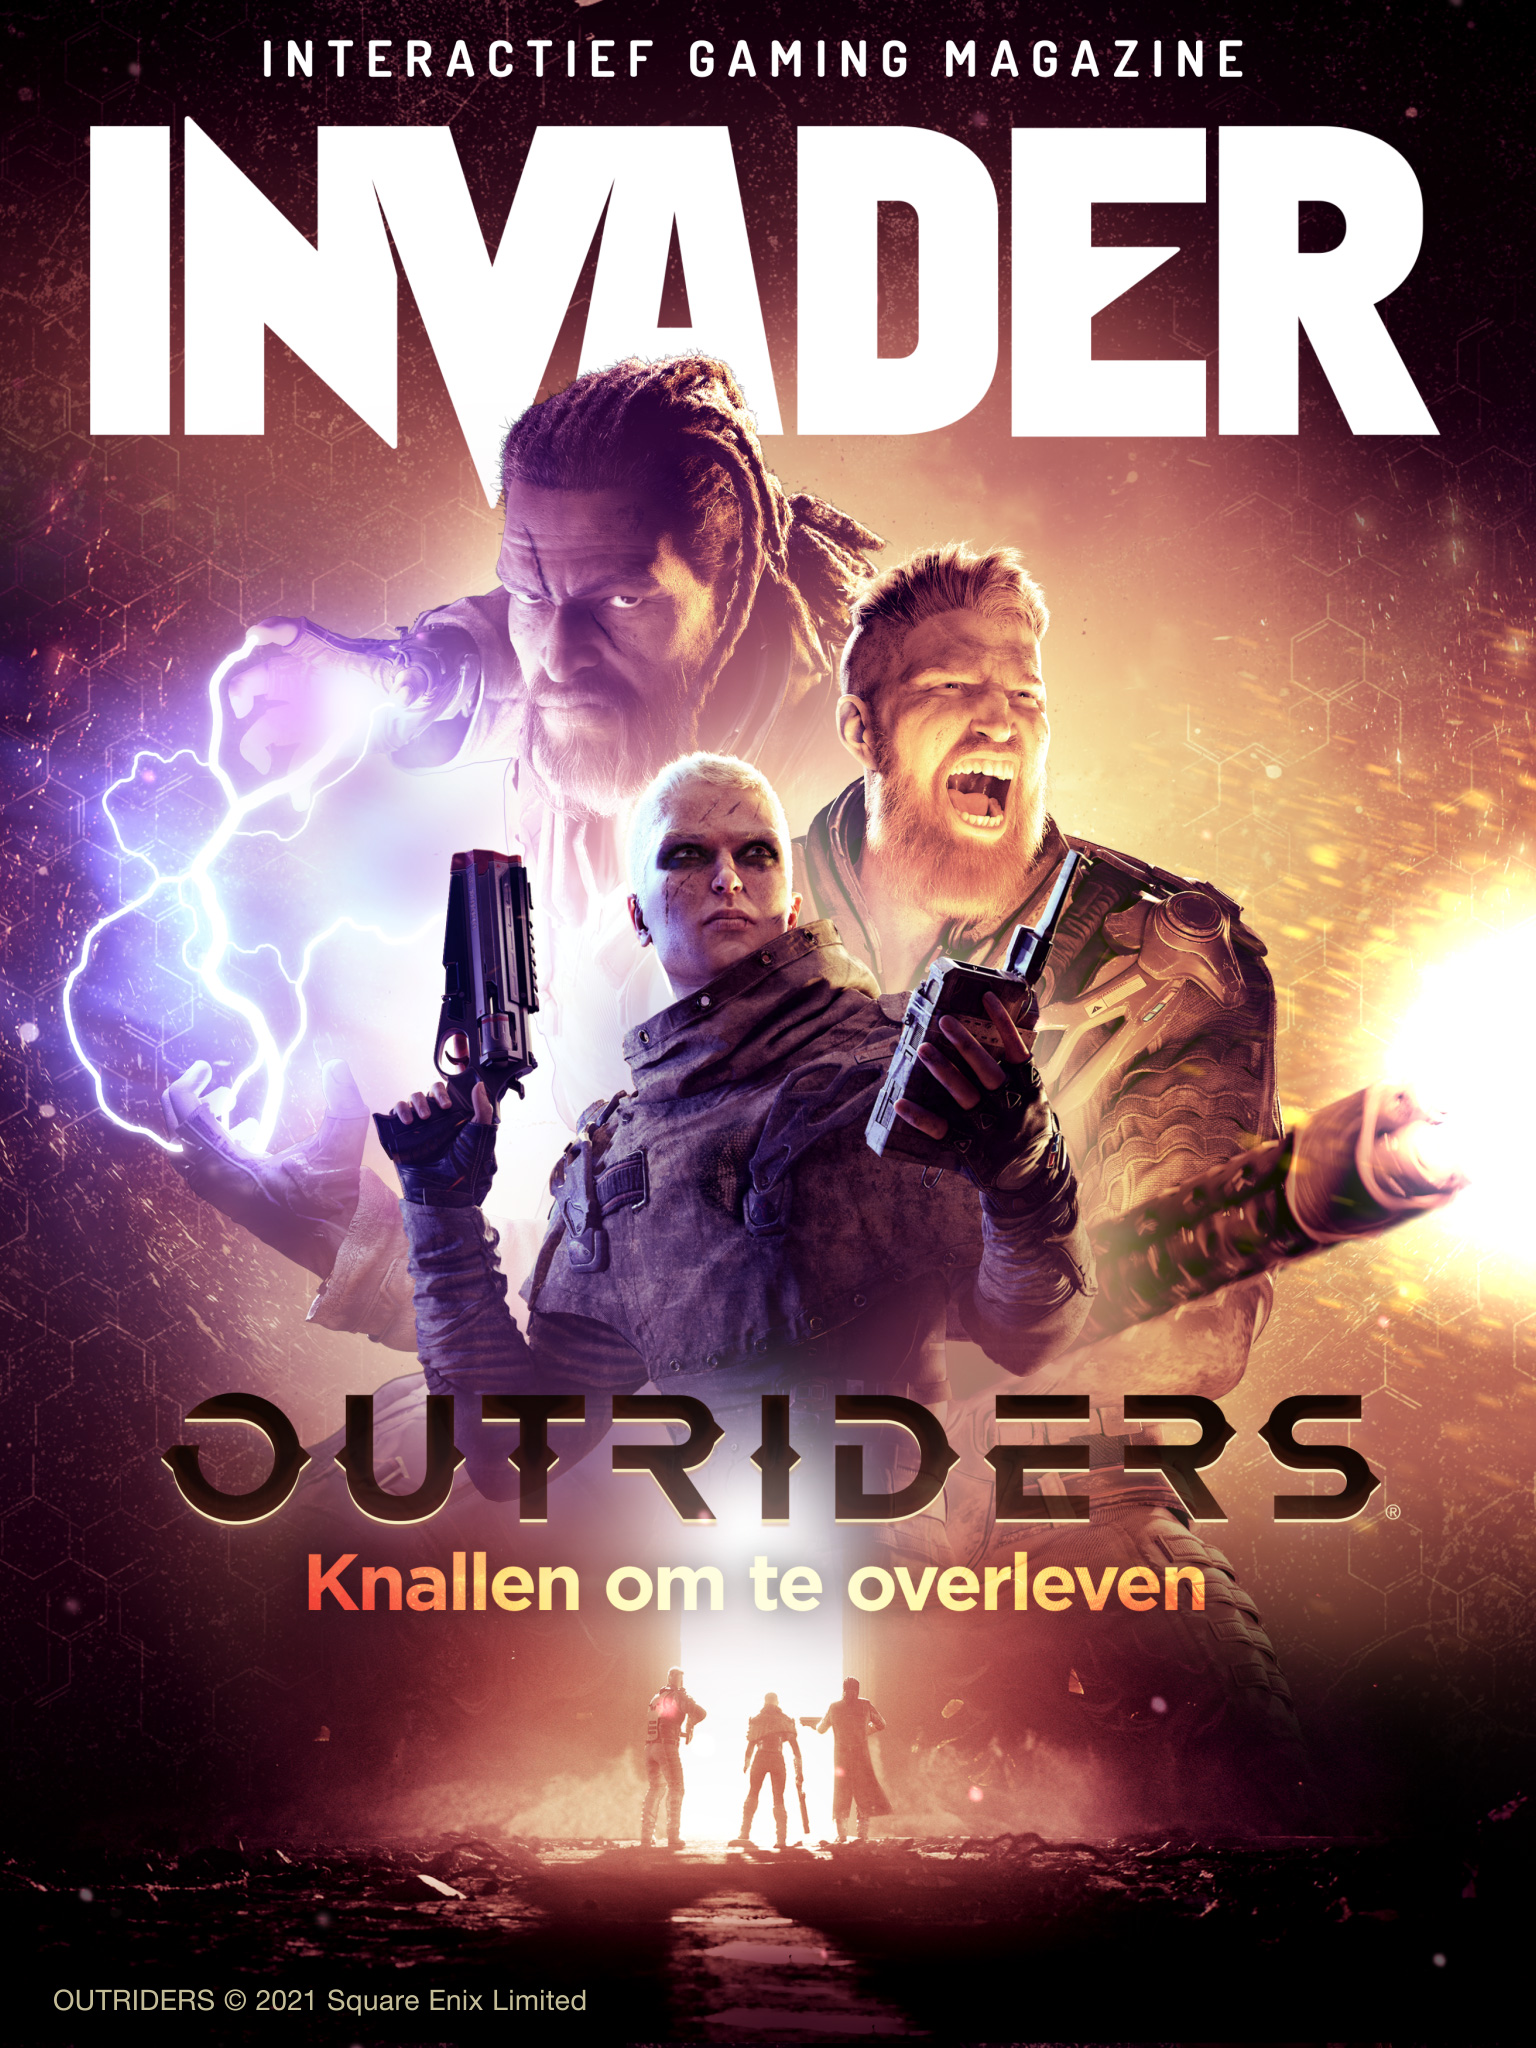 Invader81 Outriders iPad 0 00 17 23